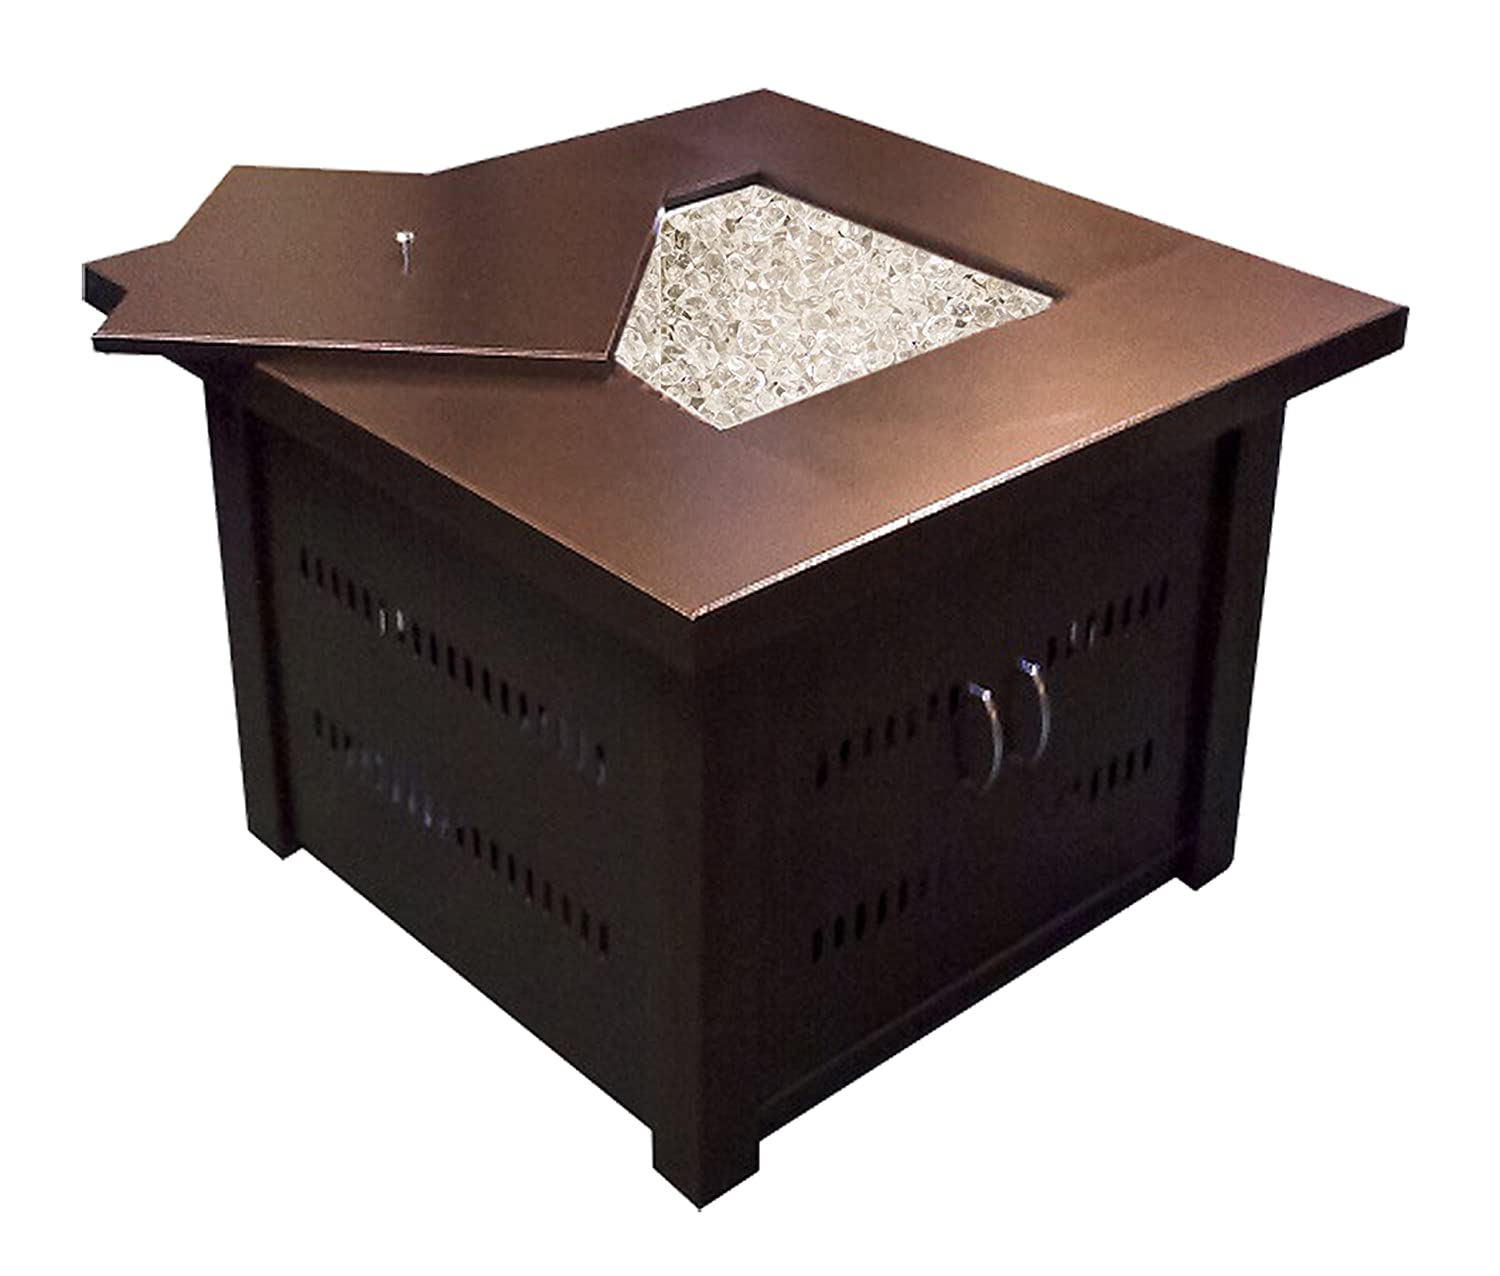 Amazon.com : AZ Patio Heaters GS-F-PC Propane Fire Pit, Antique Bronze  Finish : Gas Fire Pit : Patio, Lawn & Garden - Amazon.com : AZ Patio Heaters GS-F-PC Propane Fire Pit, Antique